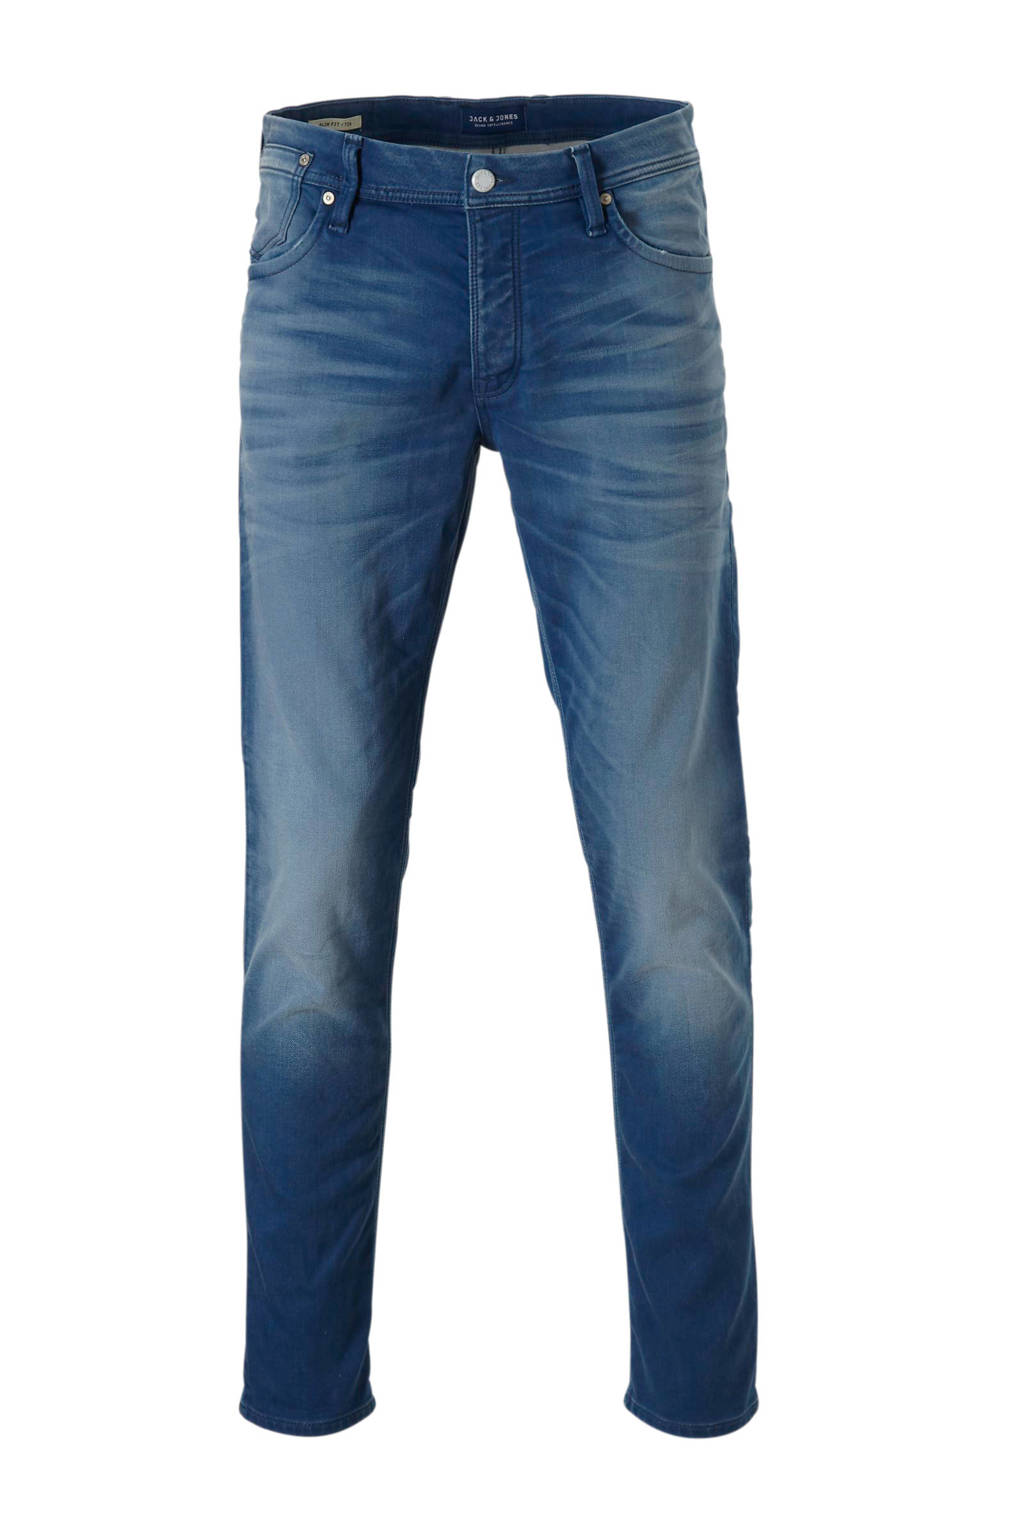 J&J Intelligence jeans Tim, Dark denim